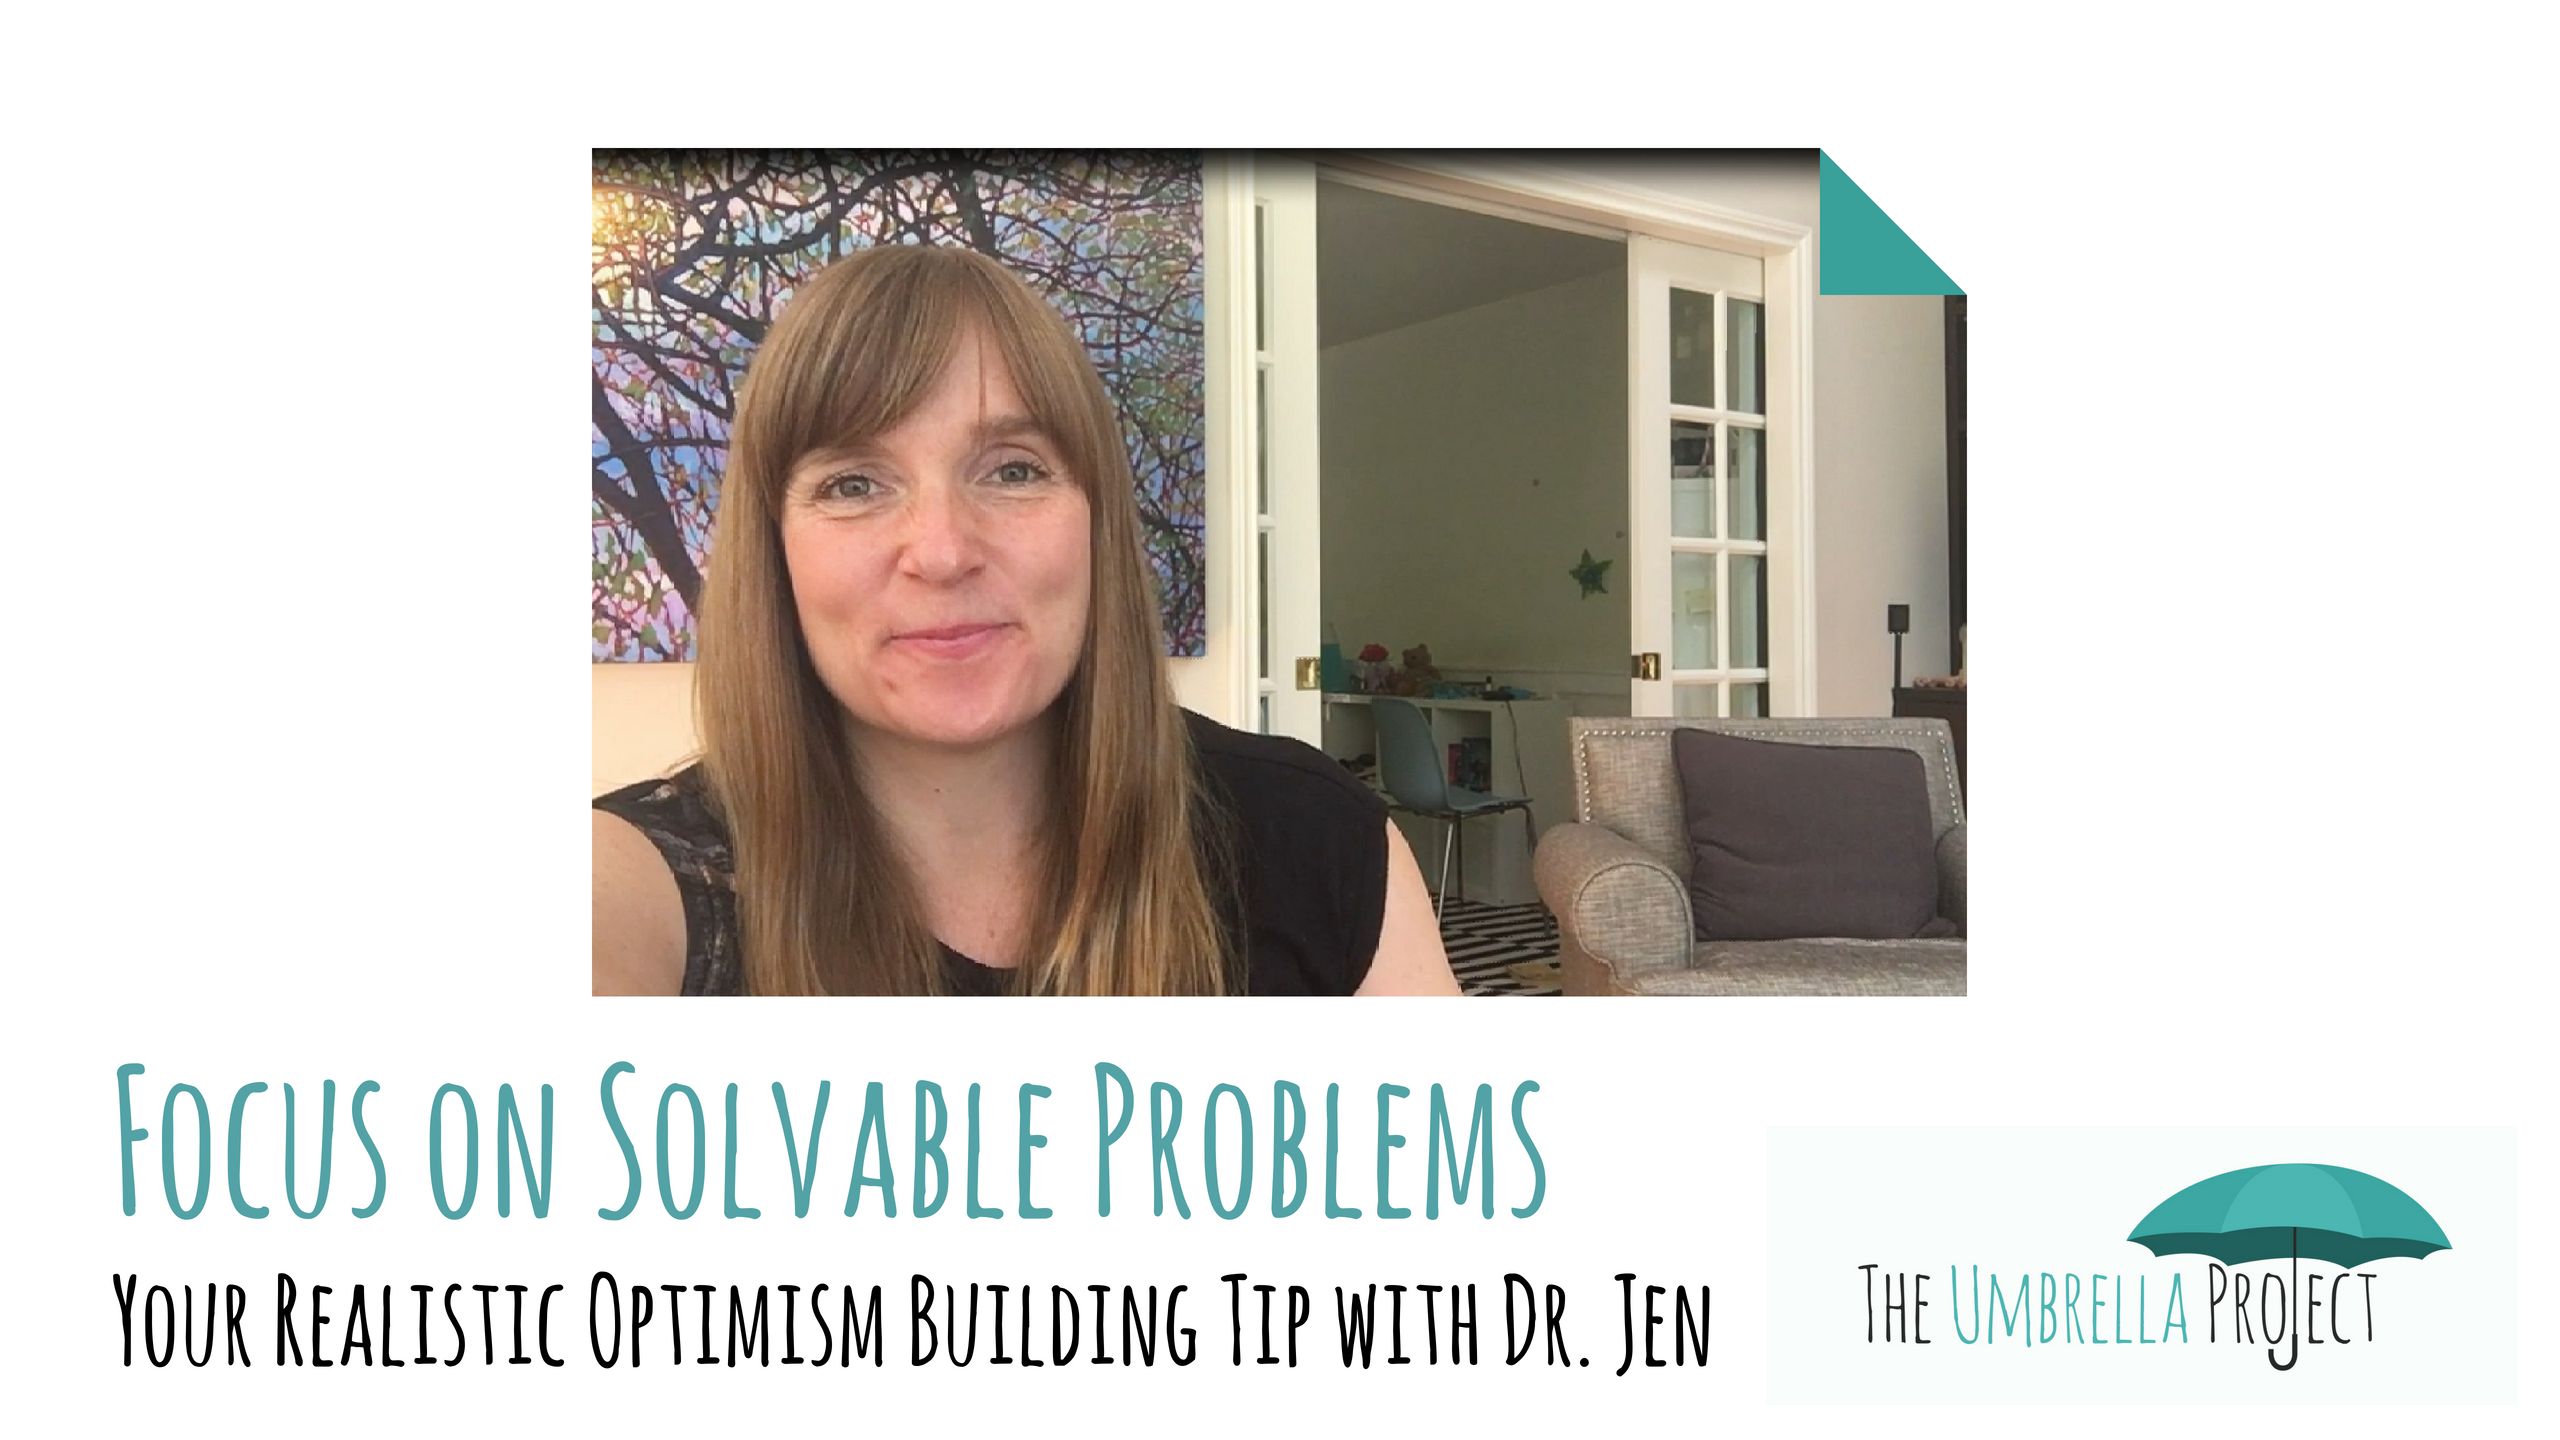 Focus on Solvable Problems: Your Realistic Optimism Building Tip with Dr. Jen